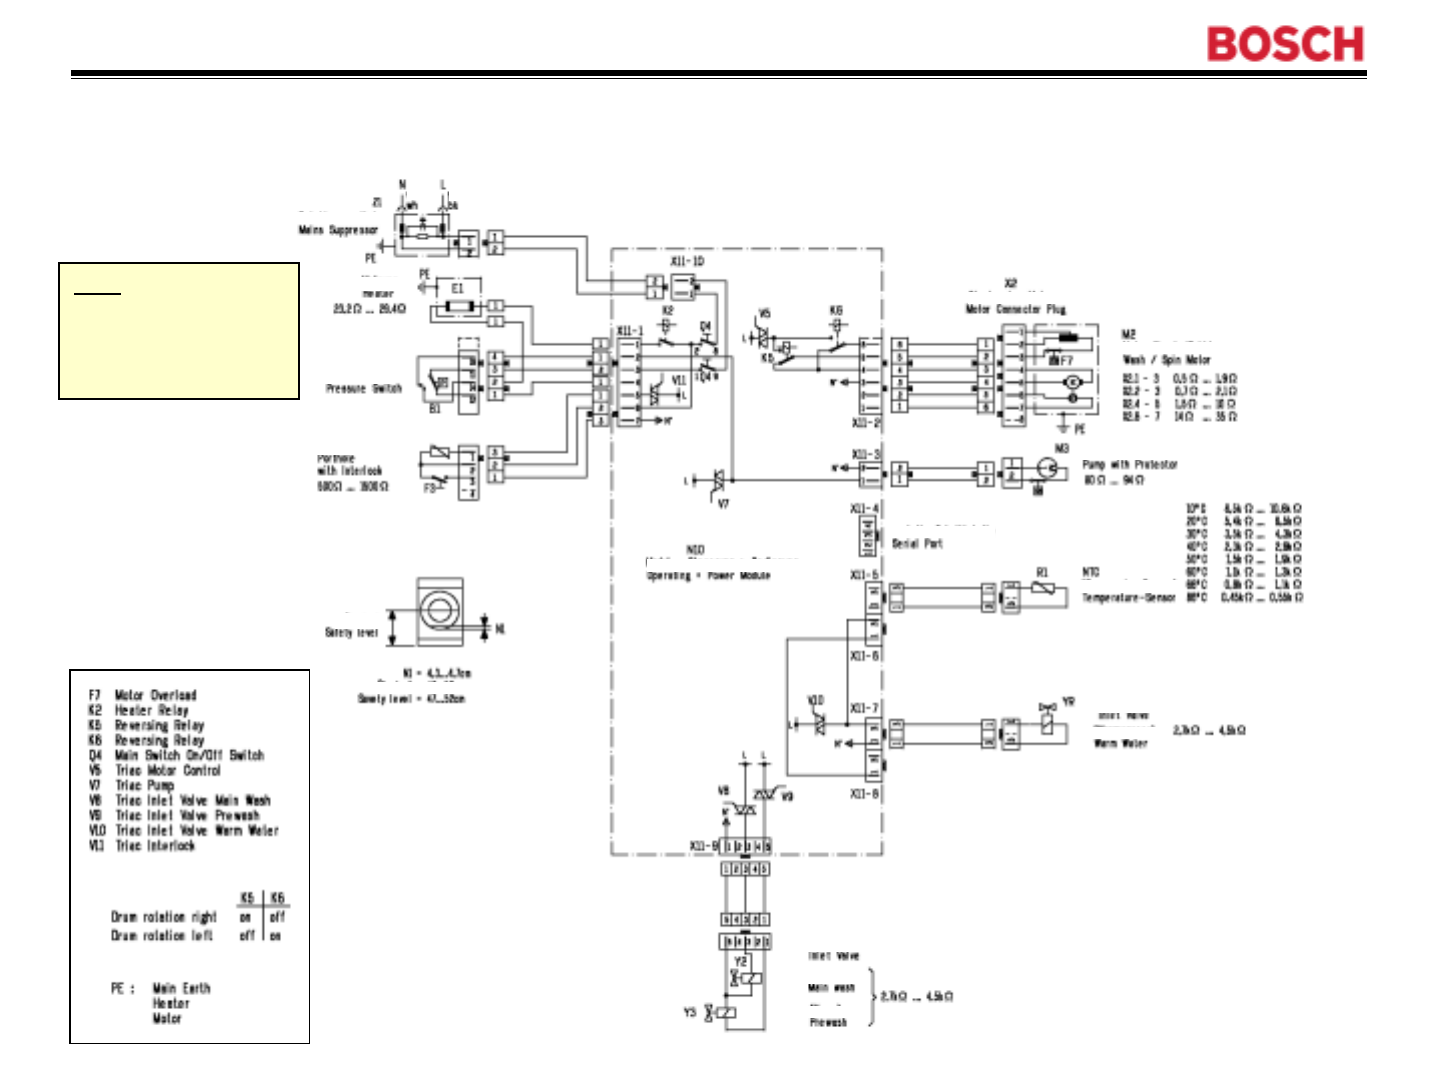 685c8626 18a2 4257 9875 ef2afaffb9a4 bg26?resize\\\=665%2C498 bosch integrated dishwasher wiring diagram ice maker wiring garbage disposal wiring diagram at crackthecode.co